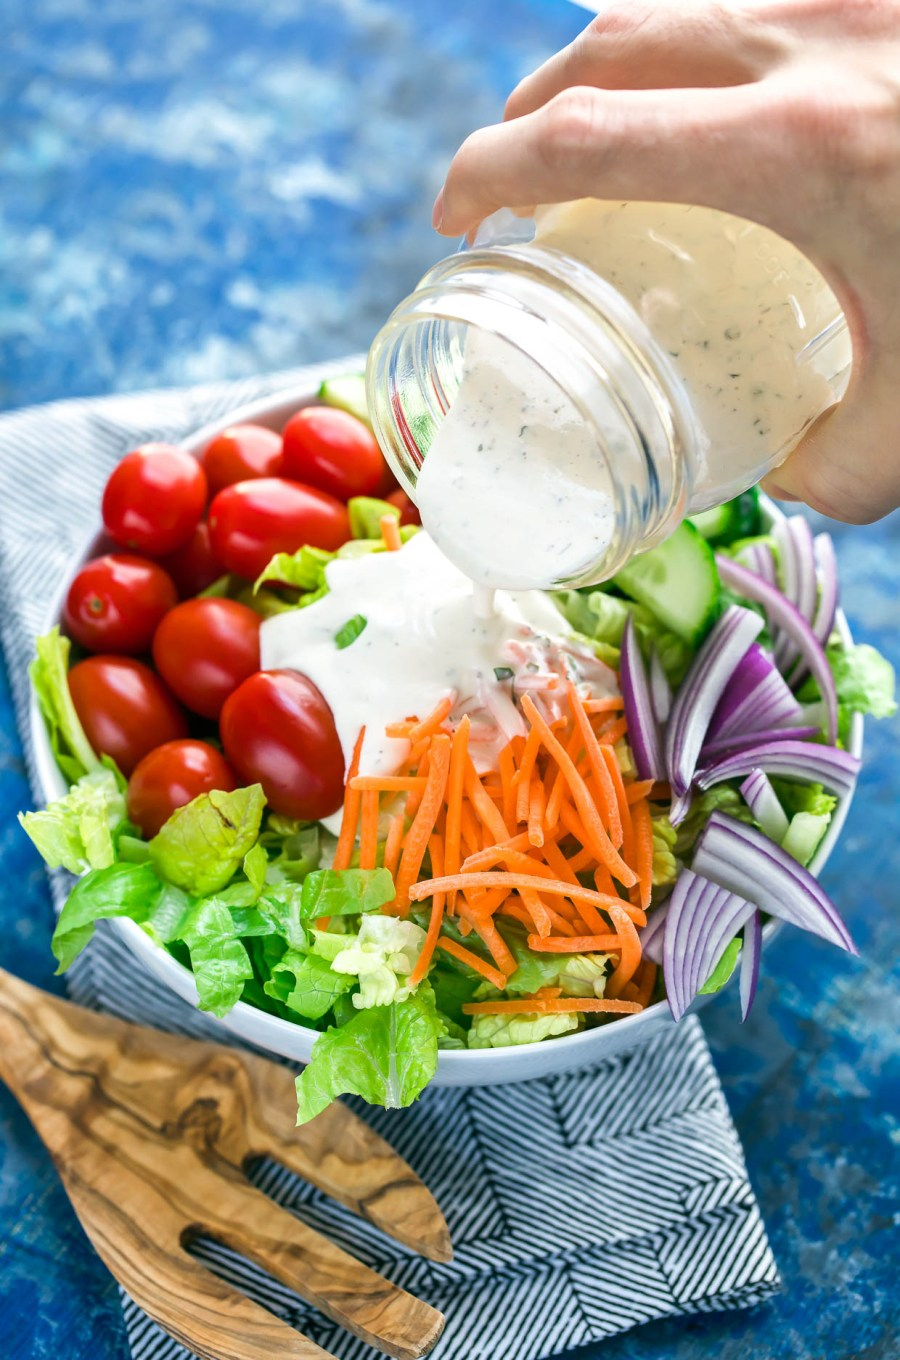 Ditch the sketchy processed bottled dressing and whip up this super quick, super easy, homemade paleo ranch dressing! Whole30 Compliant + Gluten-Free